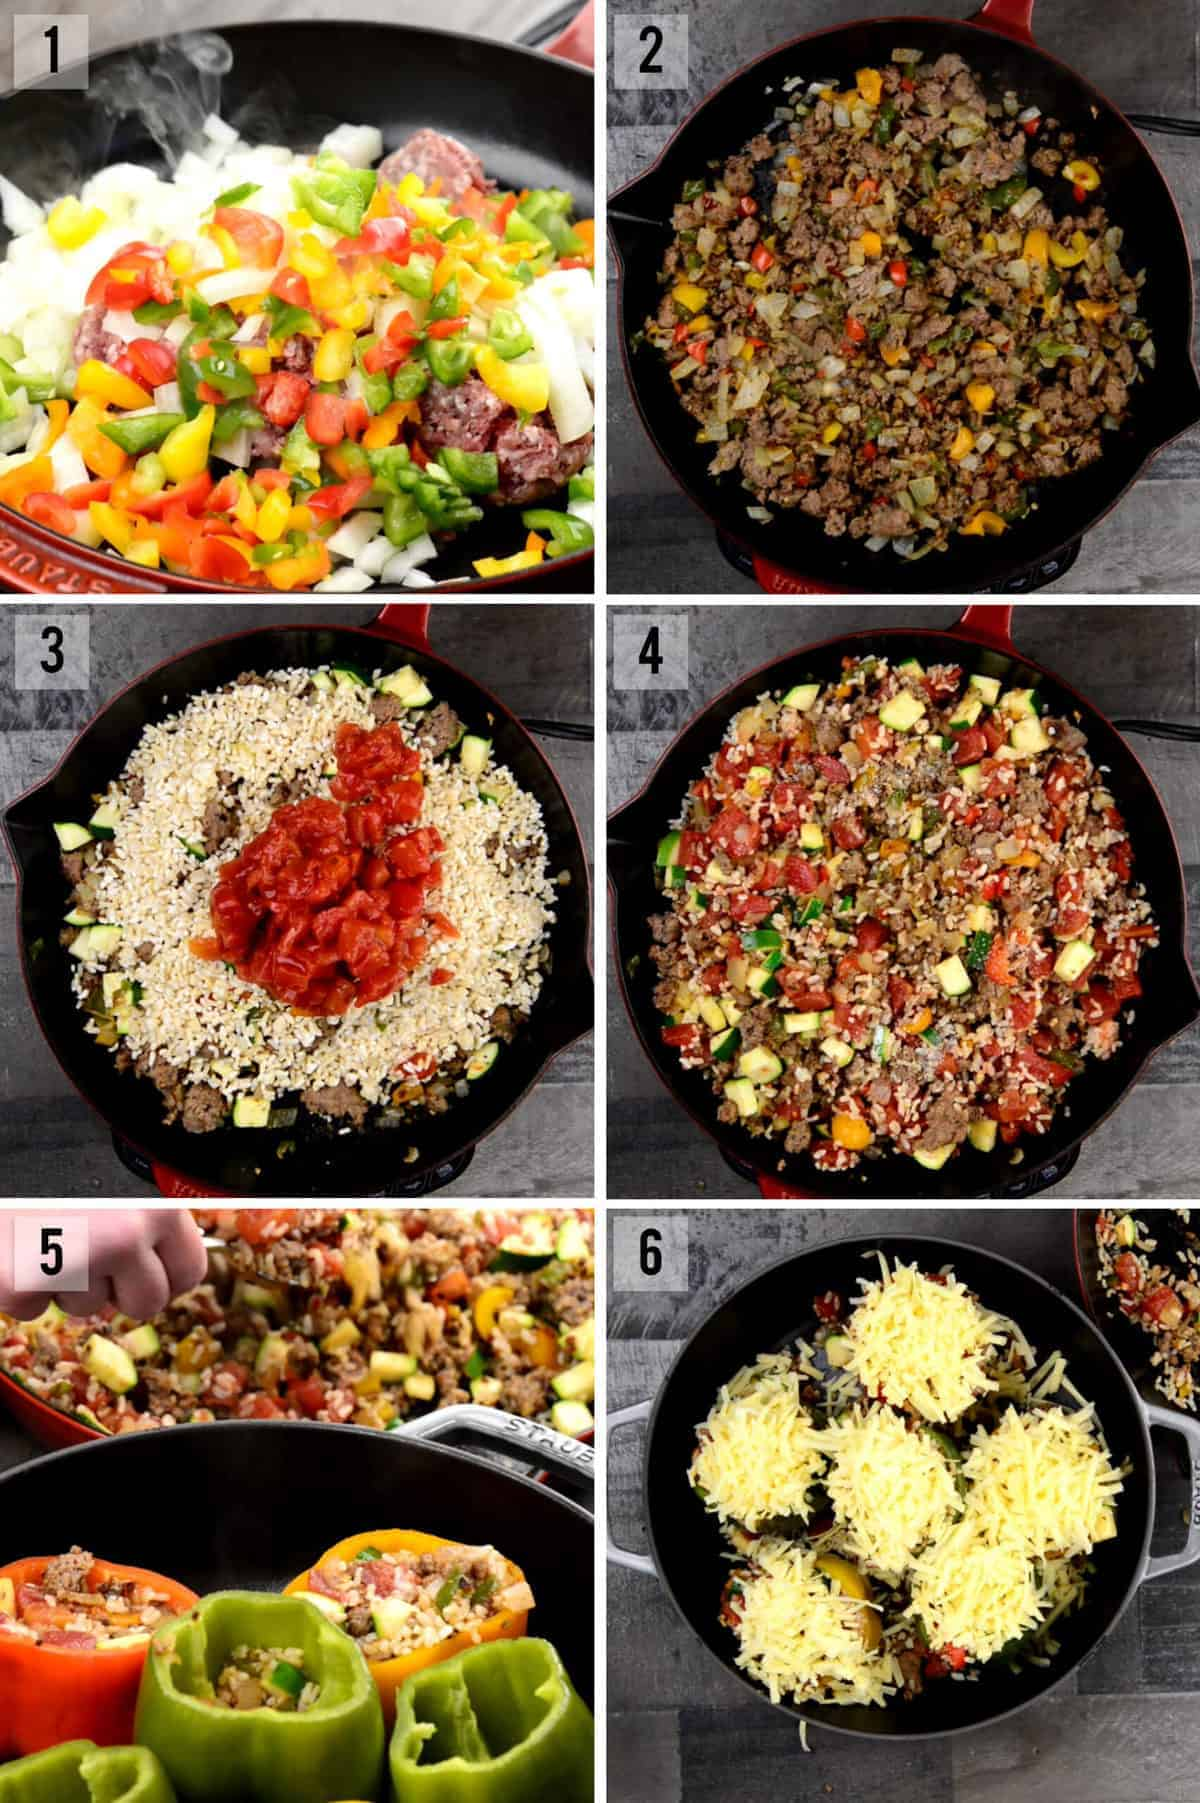 step by step process photos for stuffed pepper recipe